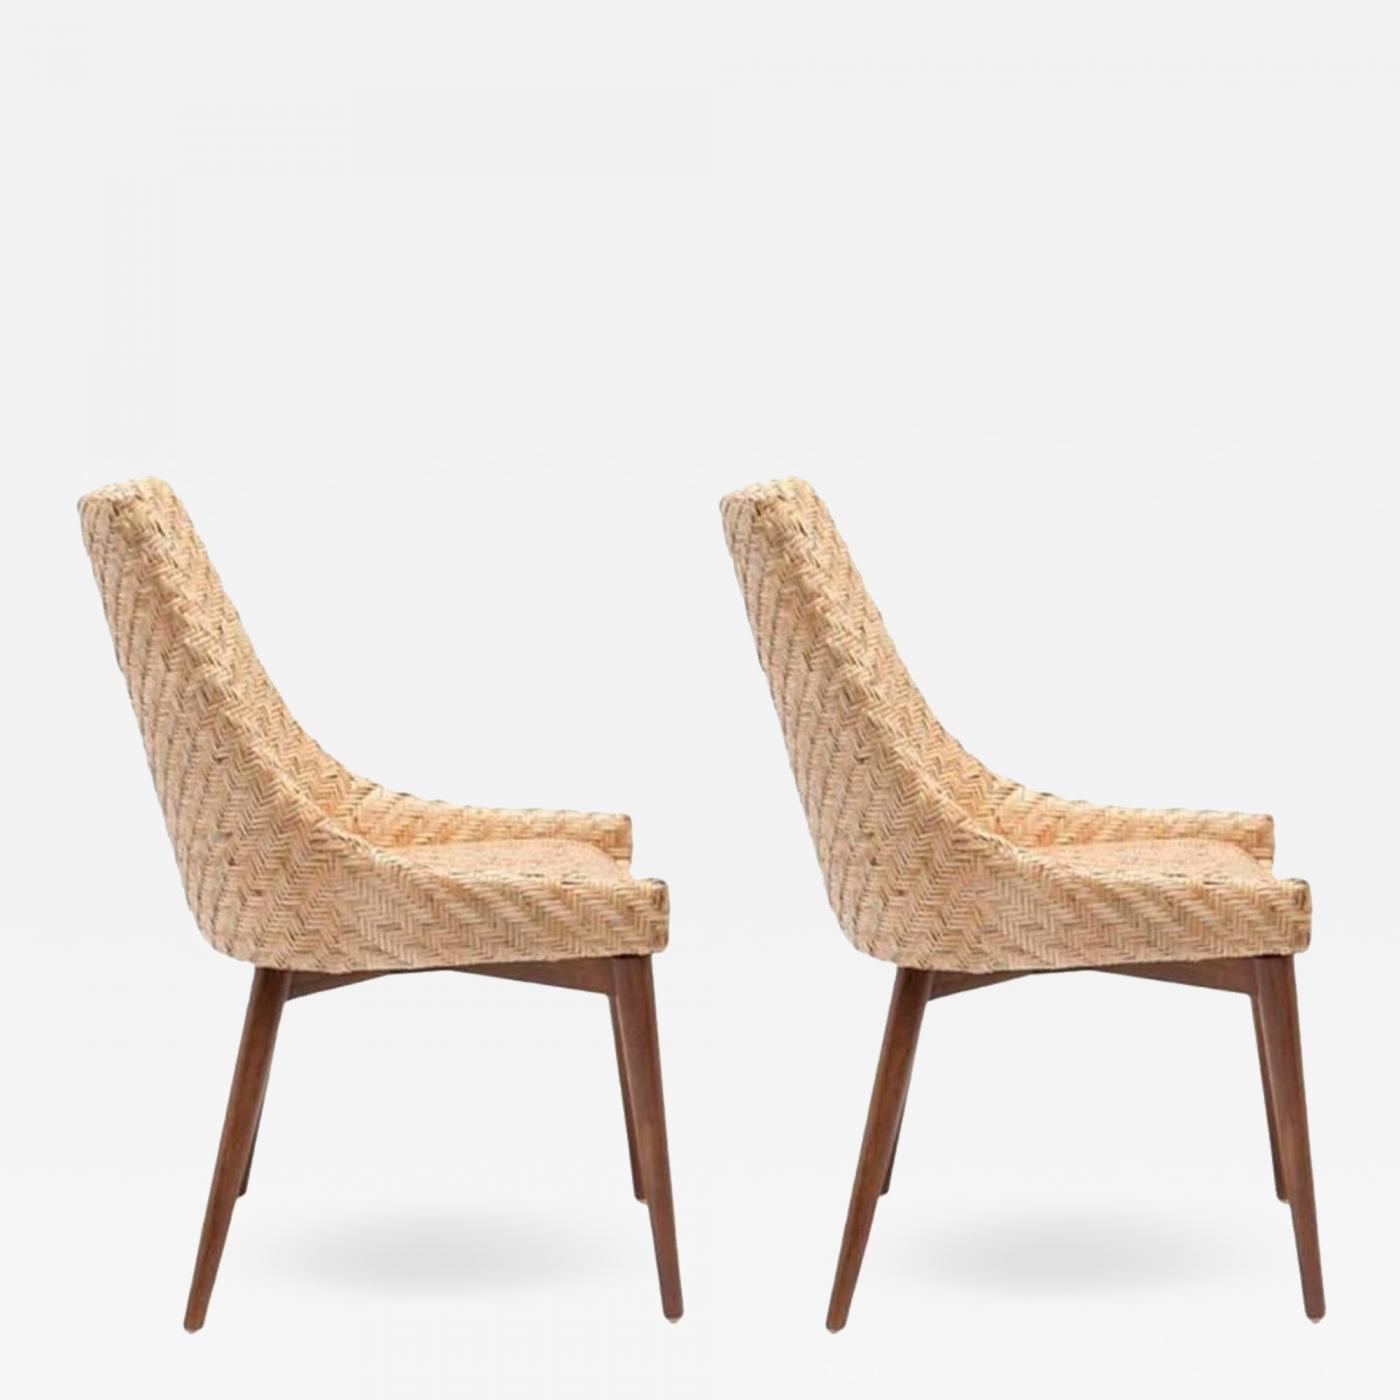 . Pair of Modern Seagrass and Cherrywood Chairs